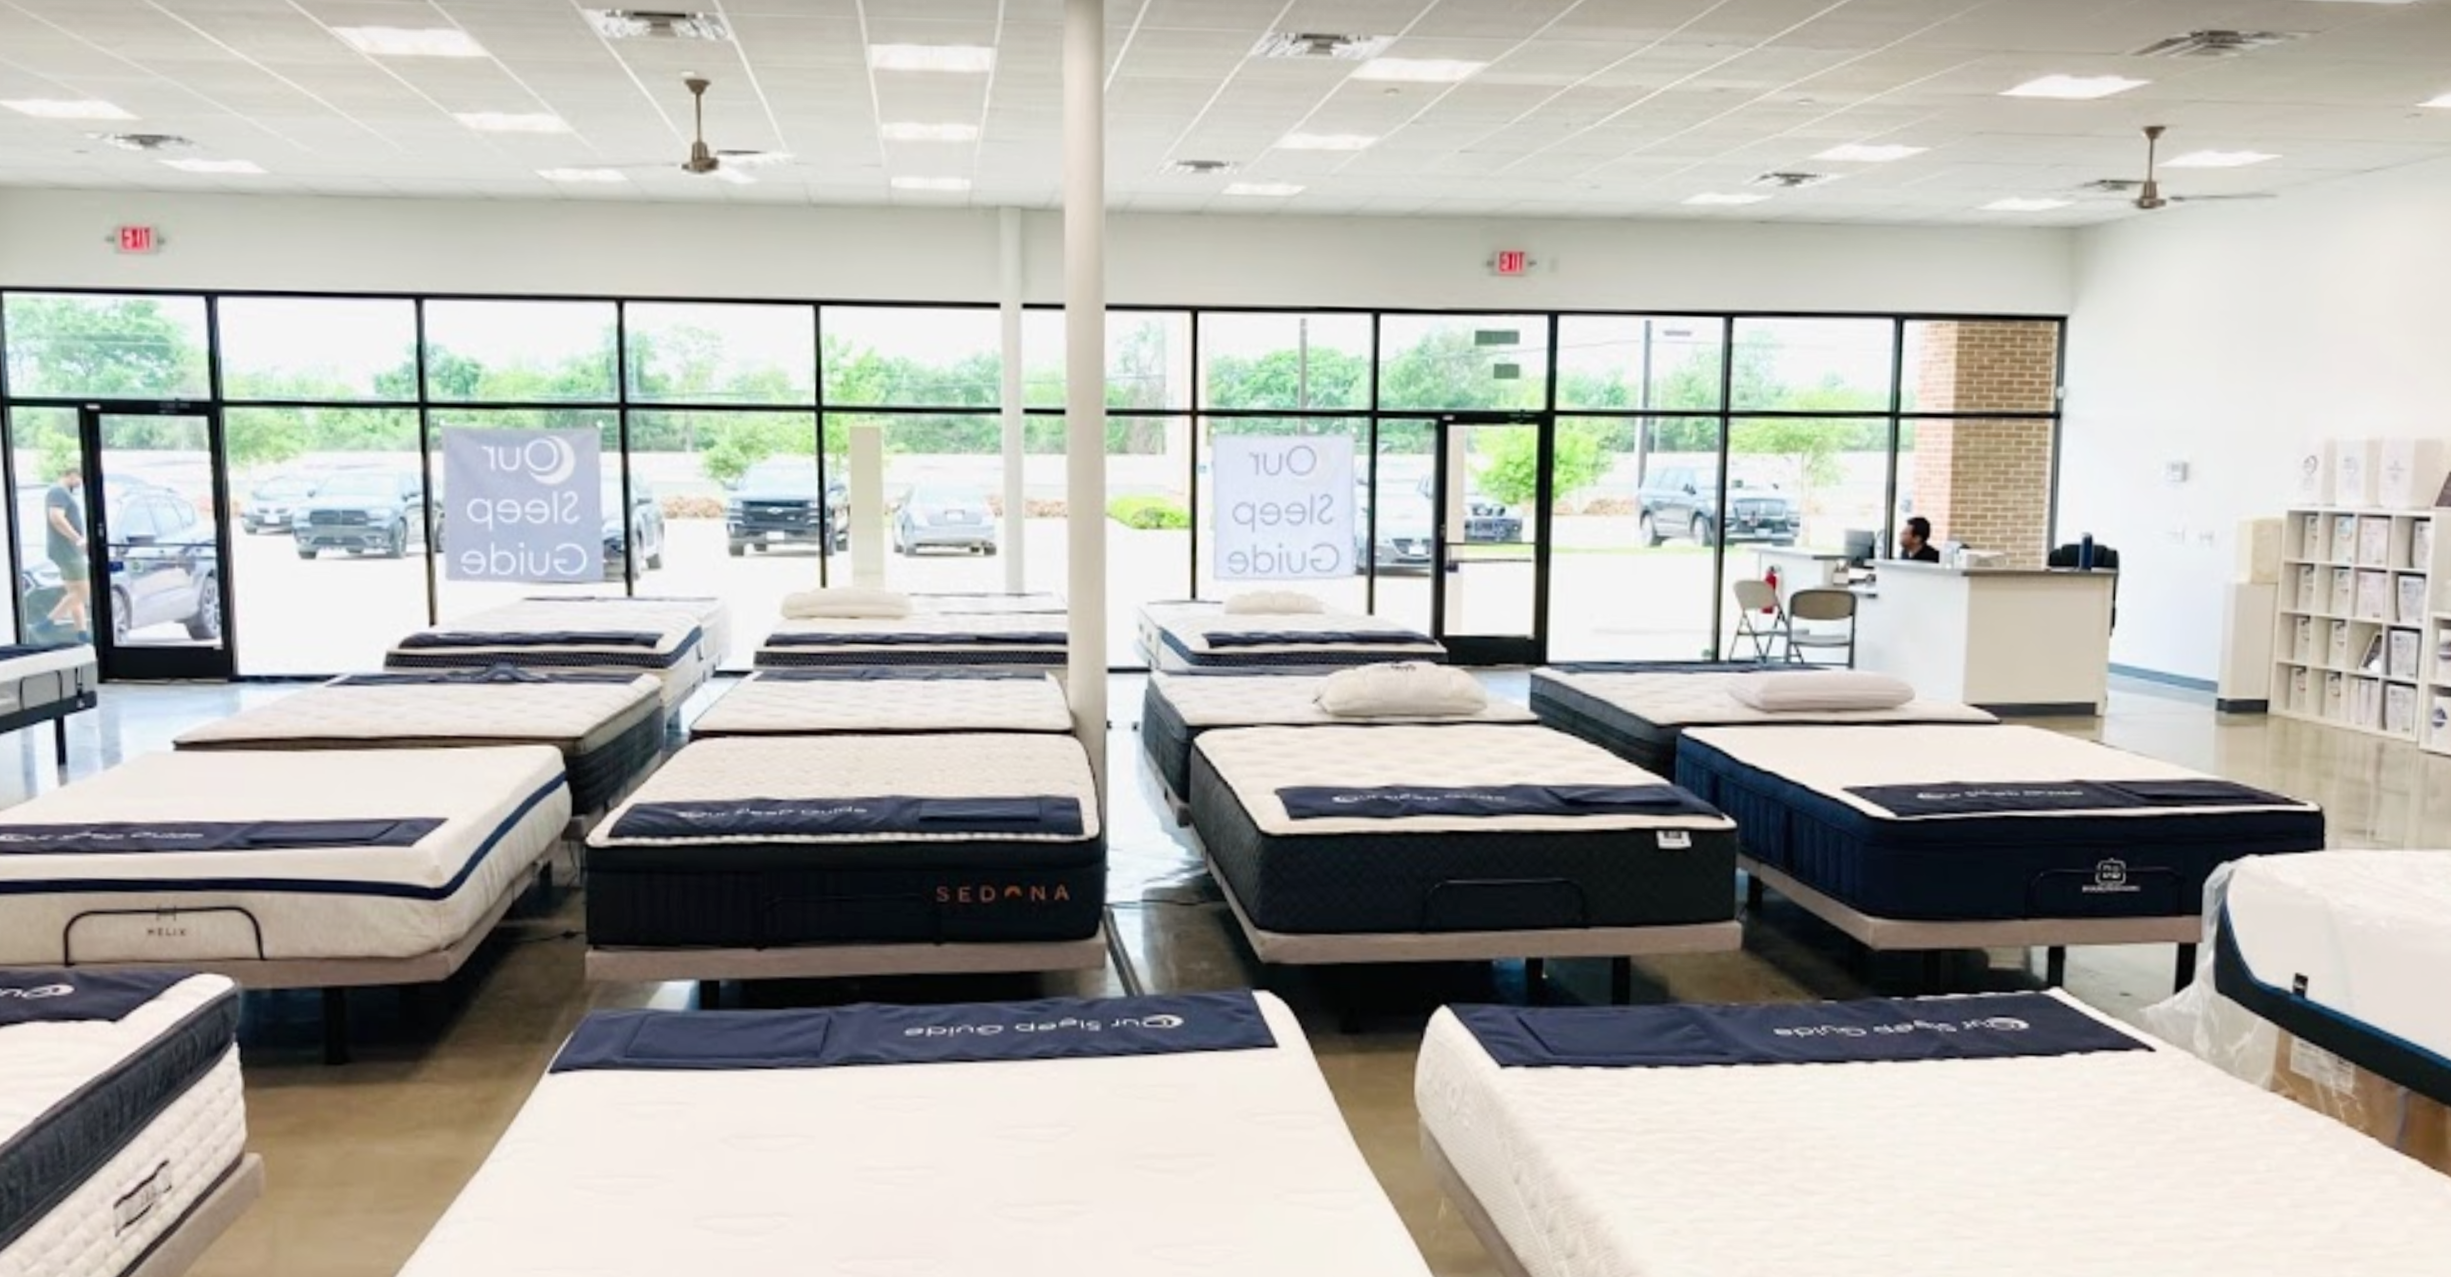 our sleep guide houston store